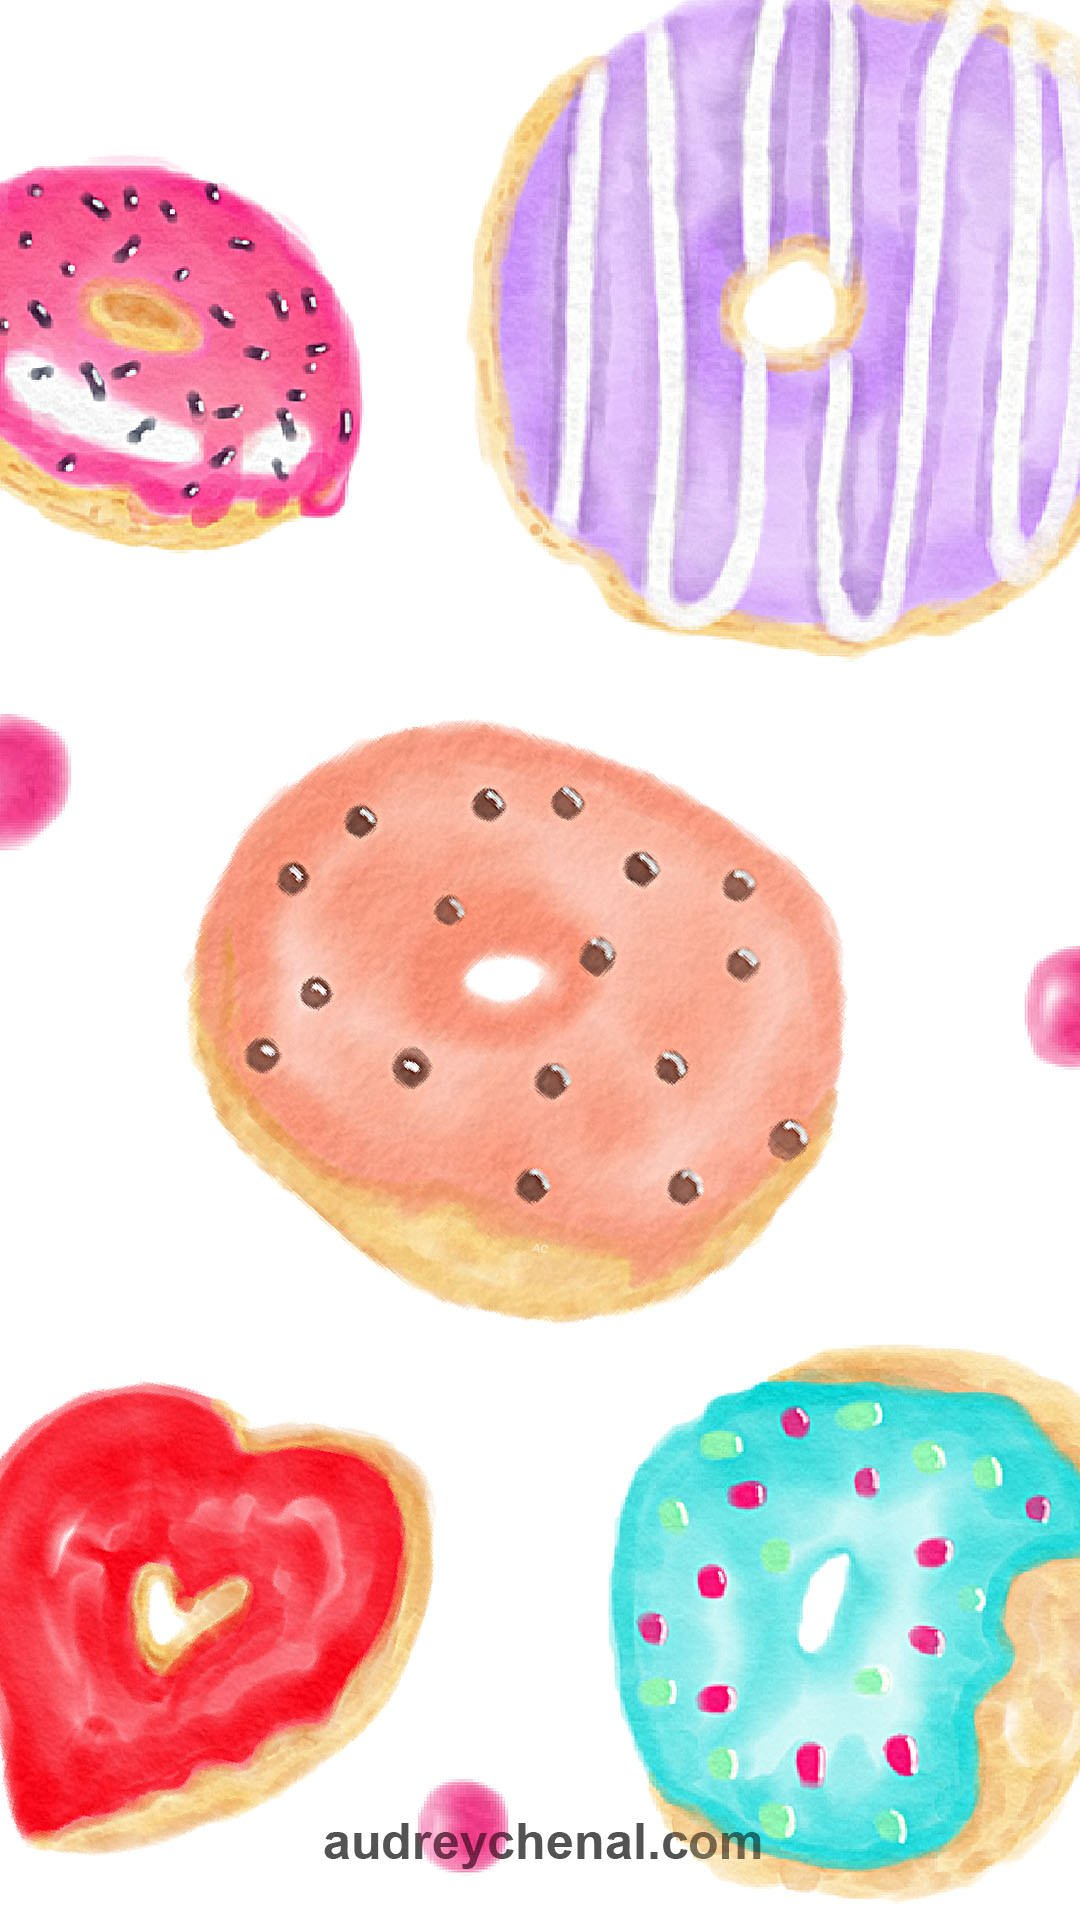 wallpaper Modern hand painted watercolor trendy colorful big donuts food hearts and dots pattern by Audrey Chenal